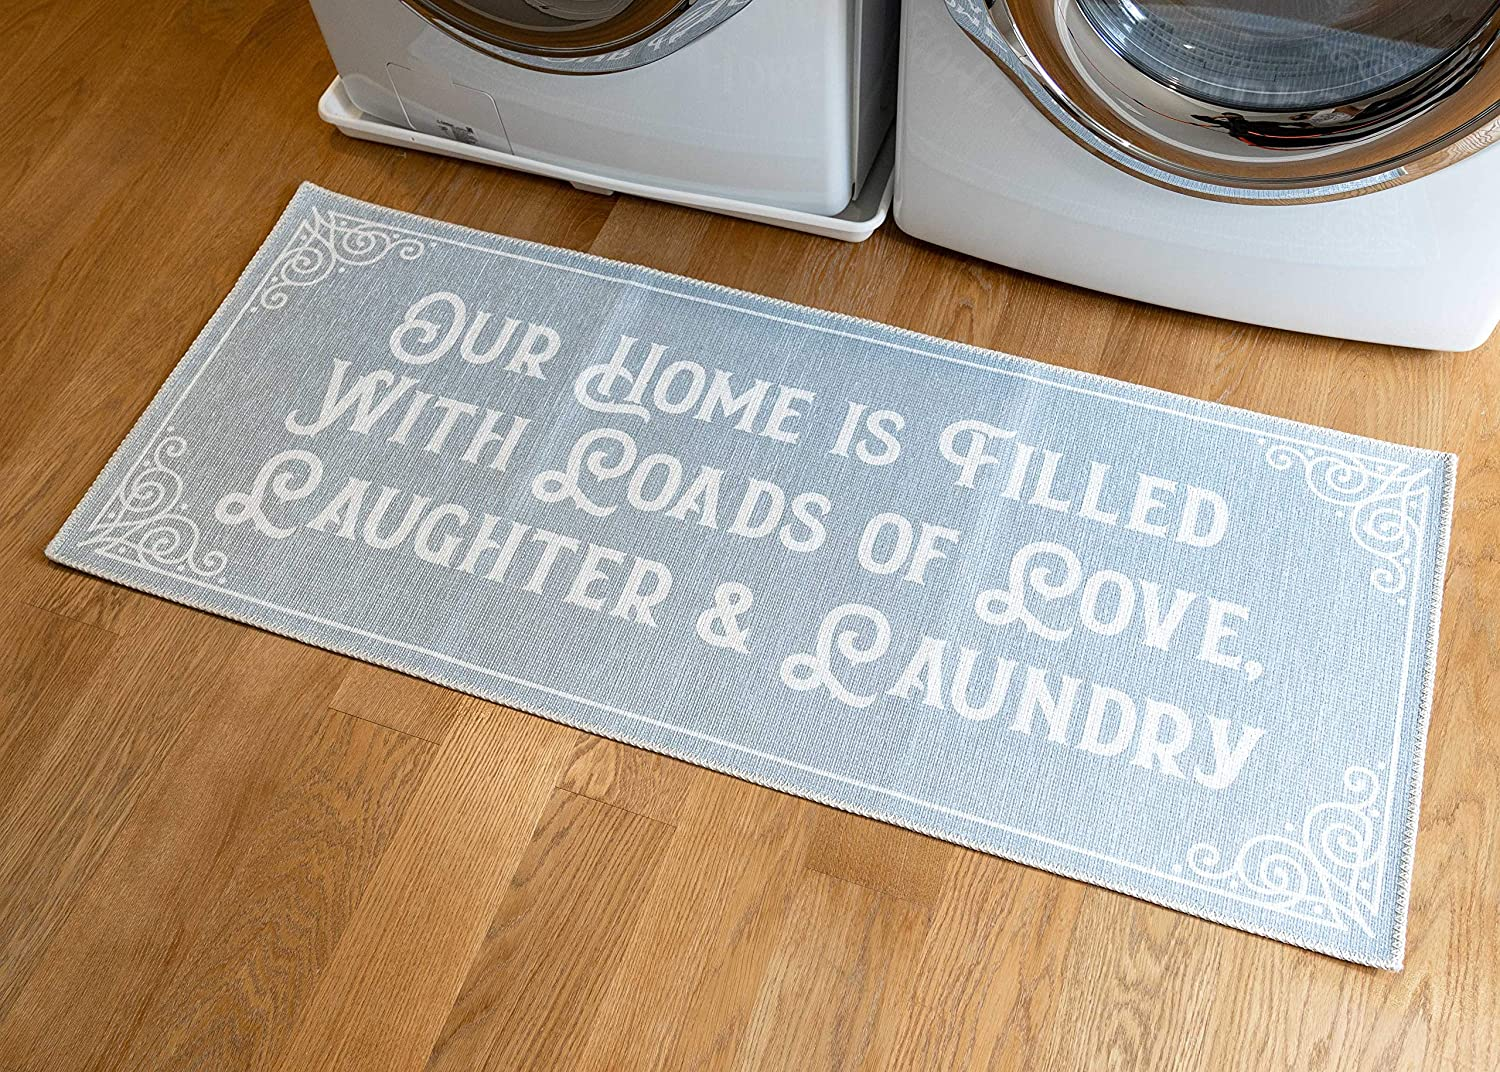 Benissimo Laundry Room Rug, Non Skid Rubber Area Rugs, Cotton, Durable, Machine Washable, Runner Floor Mat for Washroom, Bathroom, Mudroom, Kitchen Decor, 24x56-LLLA